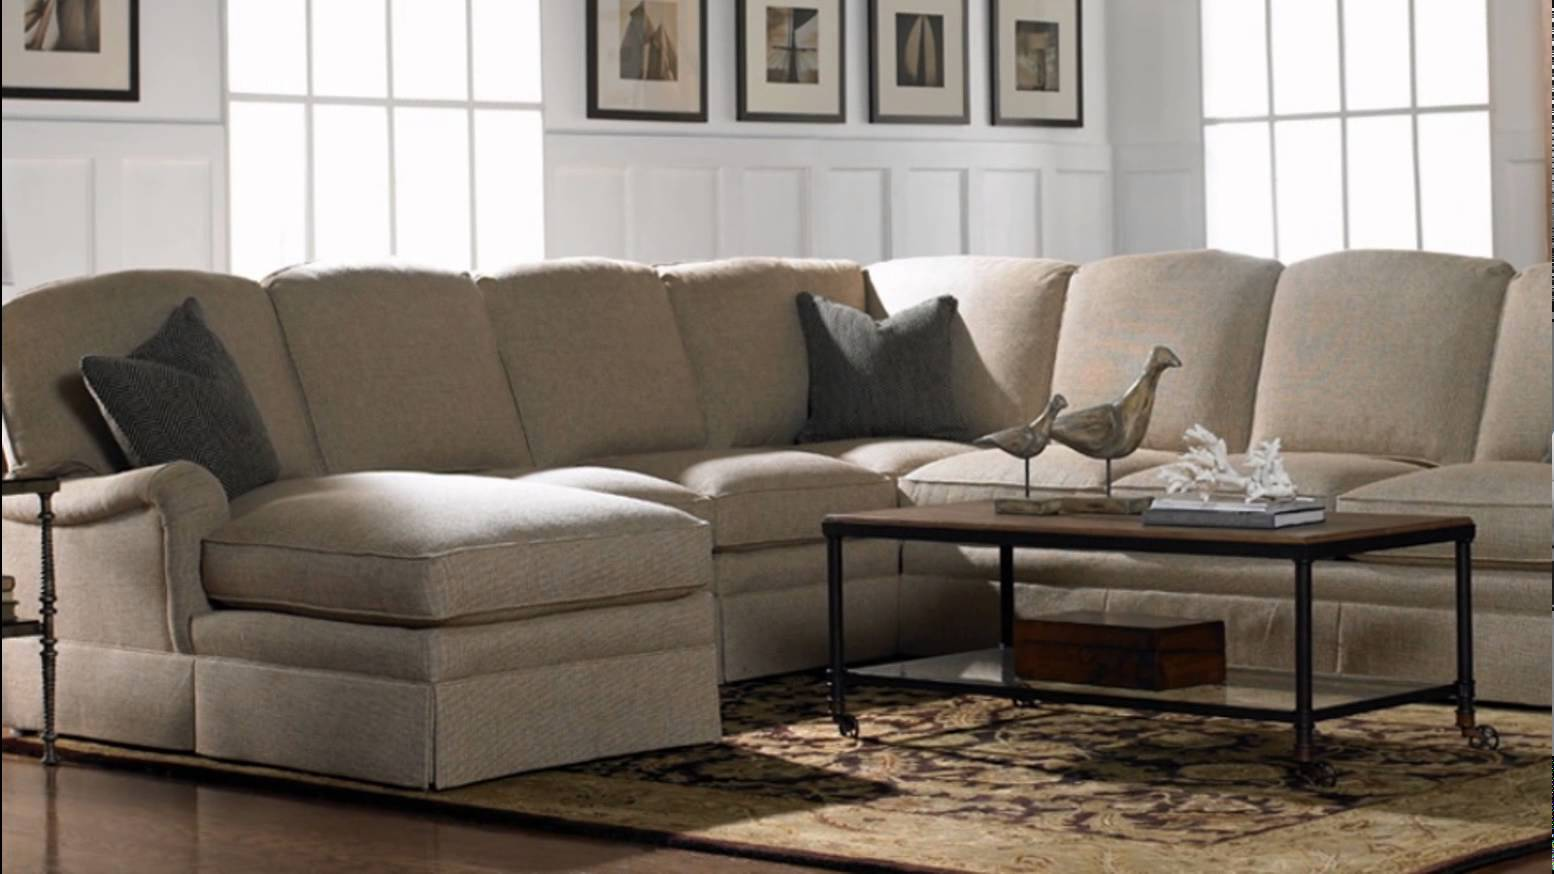 Urban Home Outlet Urban Home Outlet reviews